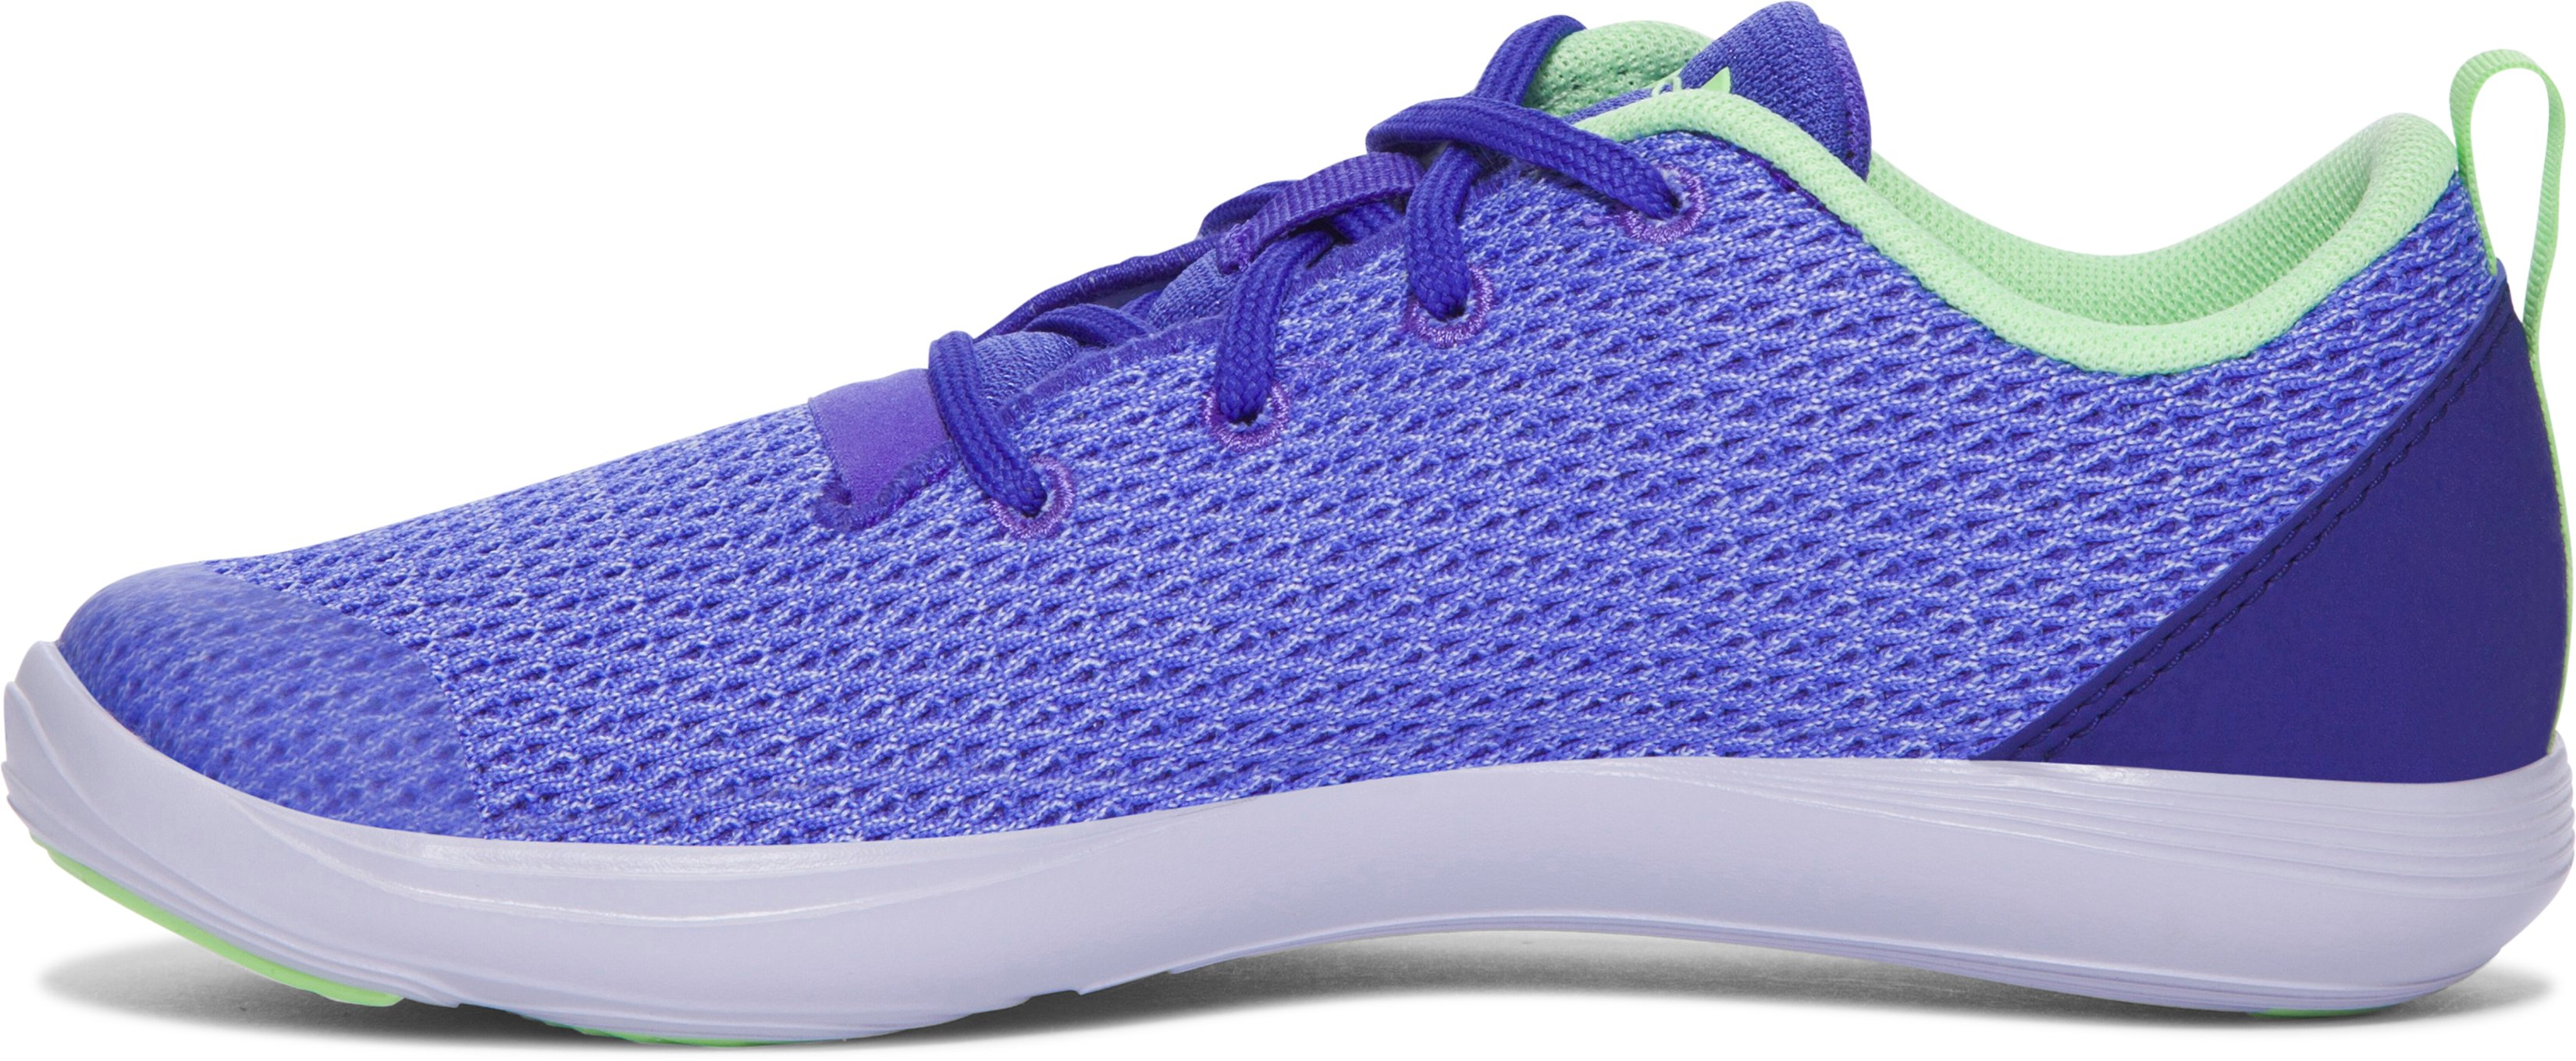 Girls' Pre-School UA Street Precision Sport Low Shoes, PURPLE CHIC,